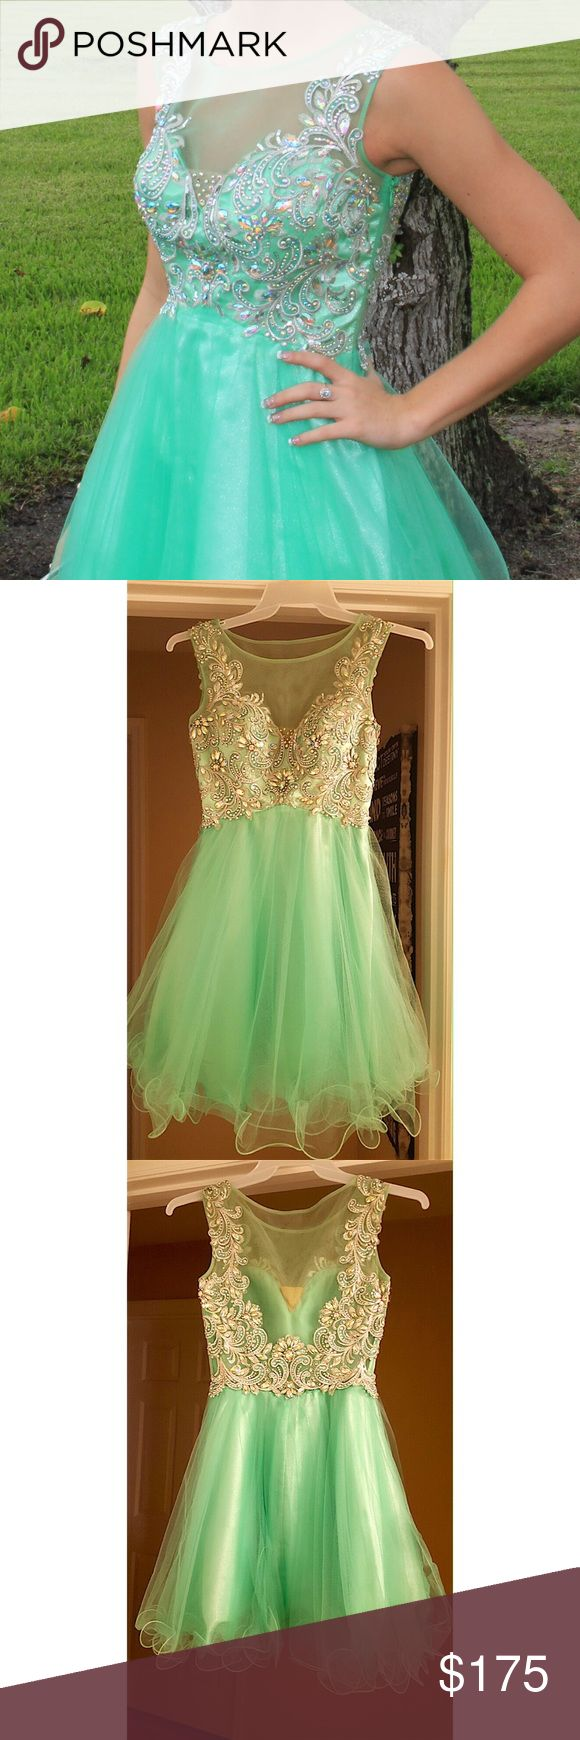 ⭐️Short Homecoming/Formal Dress/Party Dress⭐️ Size 2, (I'm 5'6 1/2, 127 lbs, 32 B but definitely room for a bigger bra size), mesh top with lots of rhinestones. Stunning back. No holes/missing jewels, or stains. No longer sold in retail.  Not Sherri Hill, tagged for views.  Already dry cleaned. Worn once. 2015 dress. WILLING TO NEGOTIATE PRICE, just comment (: Sherri Hill Dresses Mini